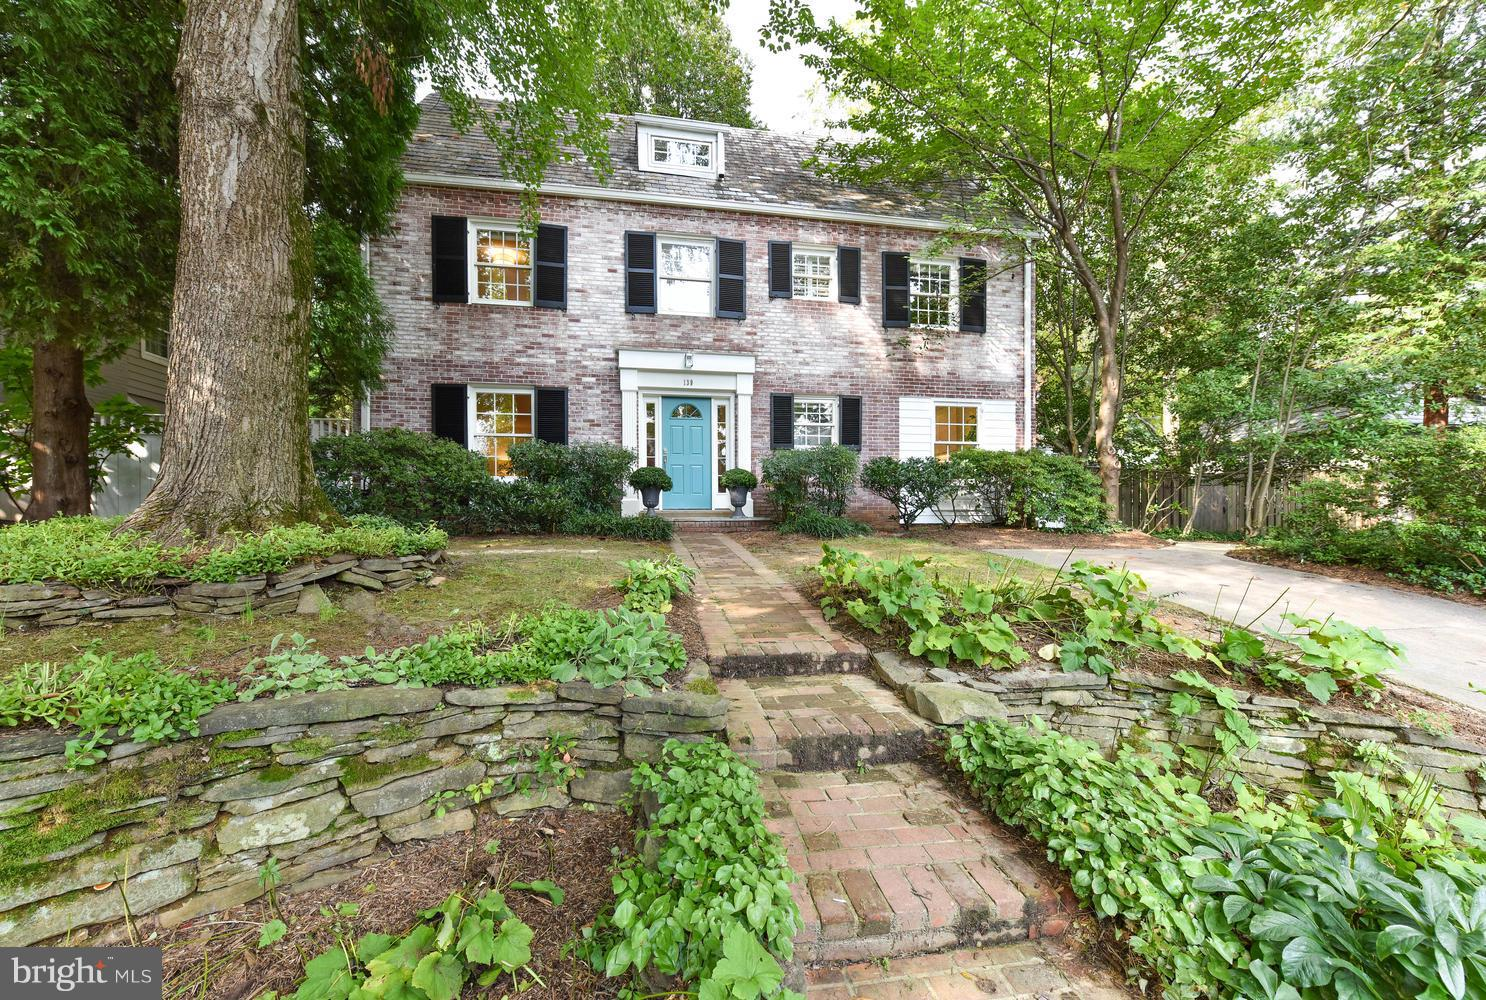 139 HESKETH STREET, CHEVY CHASE, MD 20815